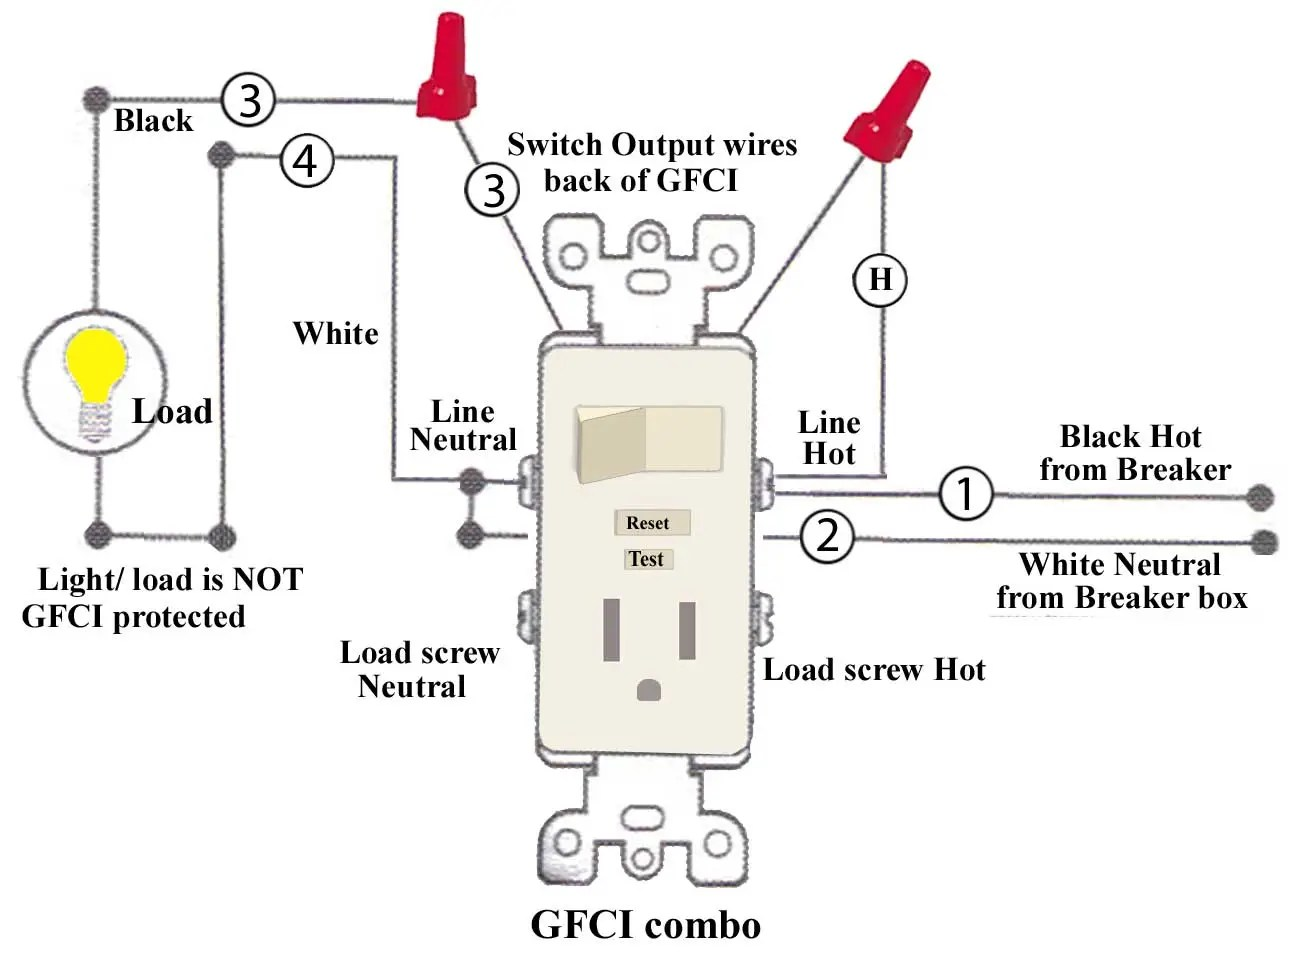 hight resolution of how to install and troubleshoot gfci how to wire a gfci with switch diagram wiring a gfci with switch